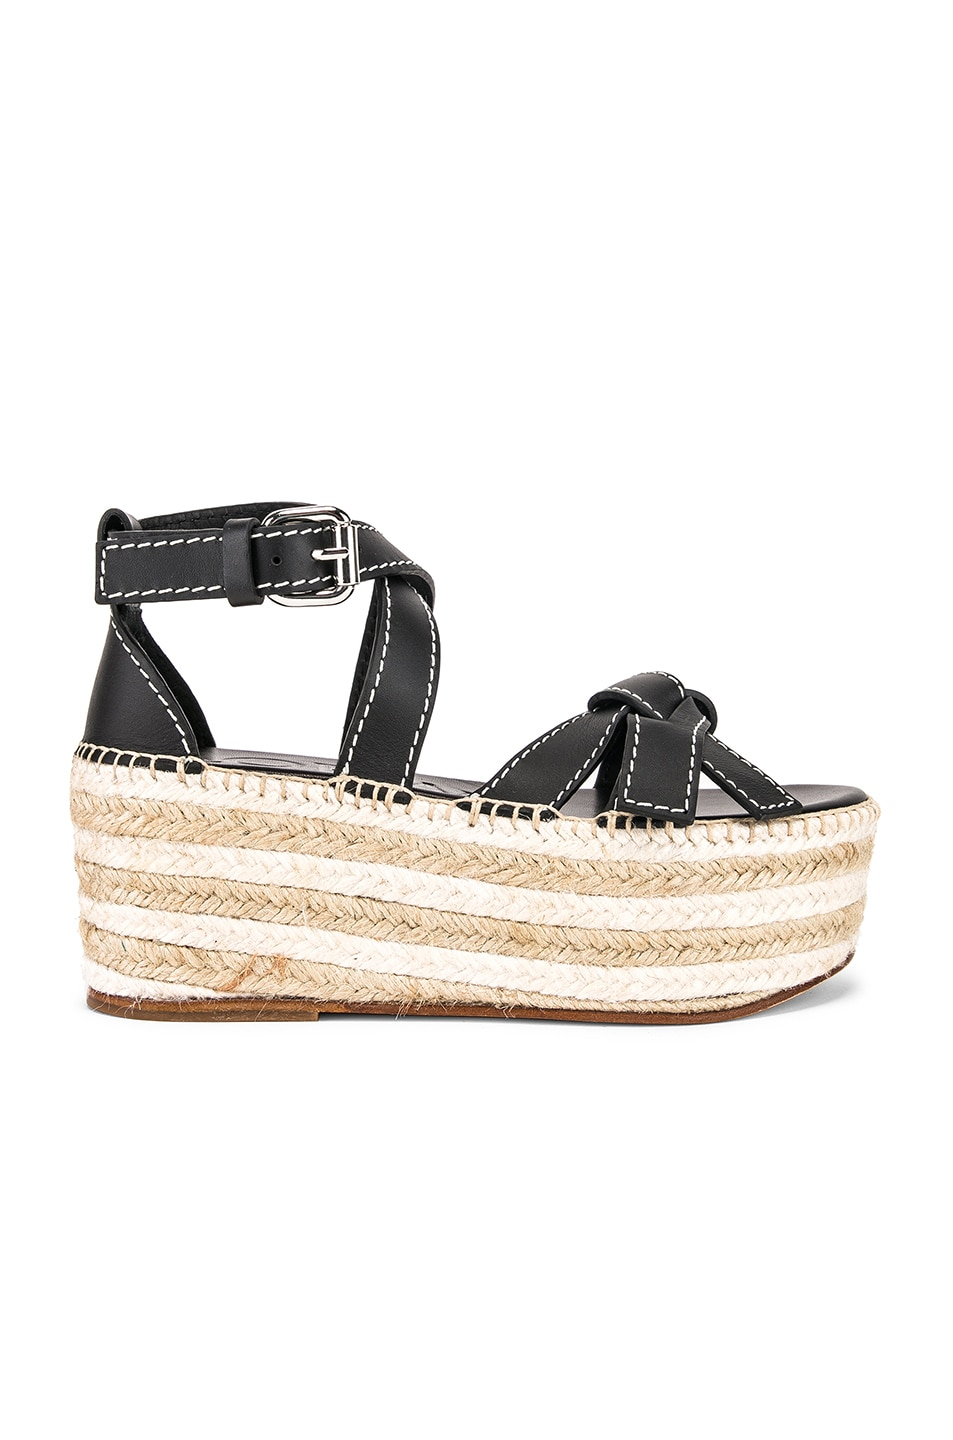 Image 1 of Loewe Gate Wedge Sandal in Black